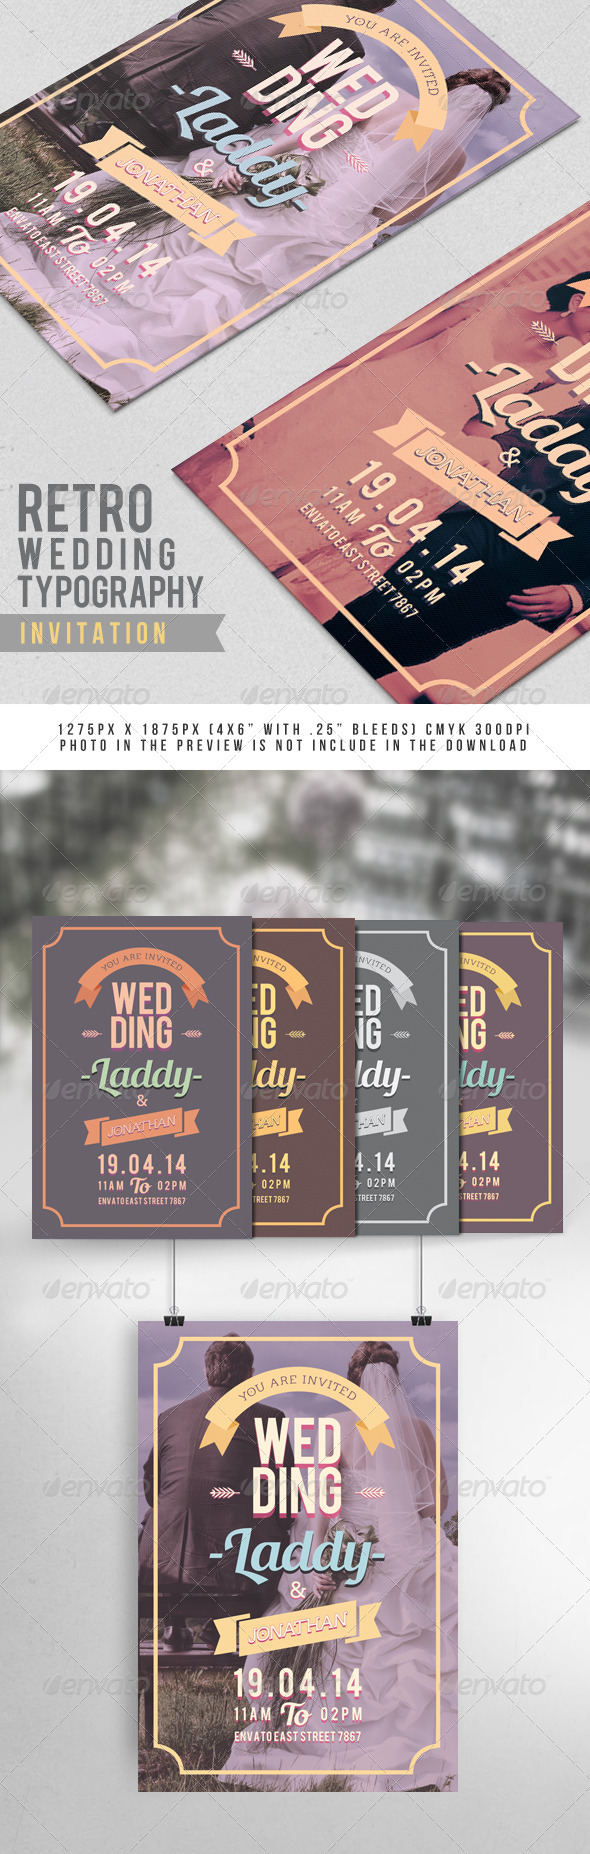 Retro Wedding Typography Invitation - Weddings Cards & Invites